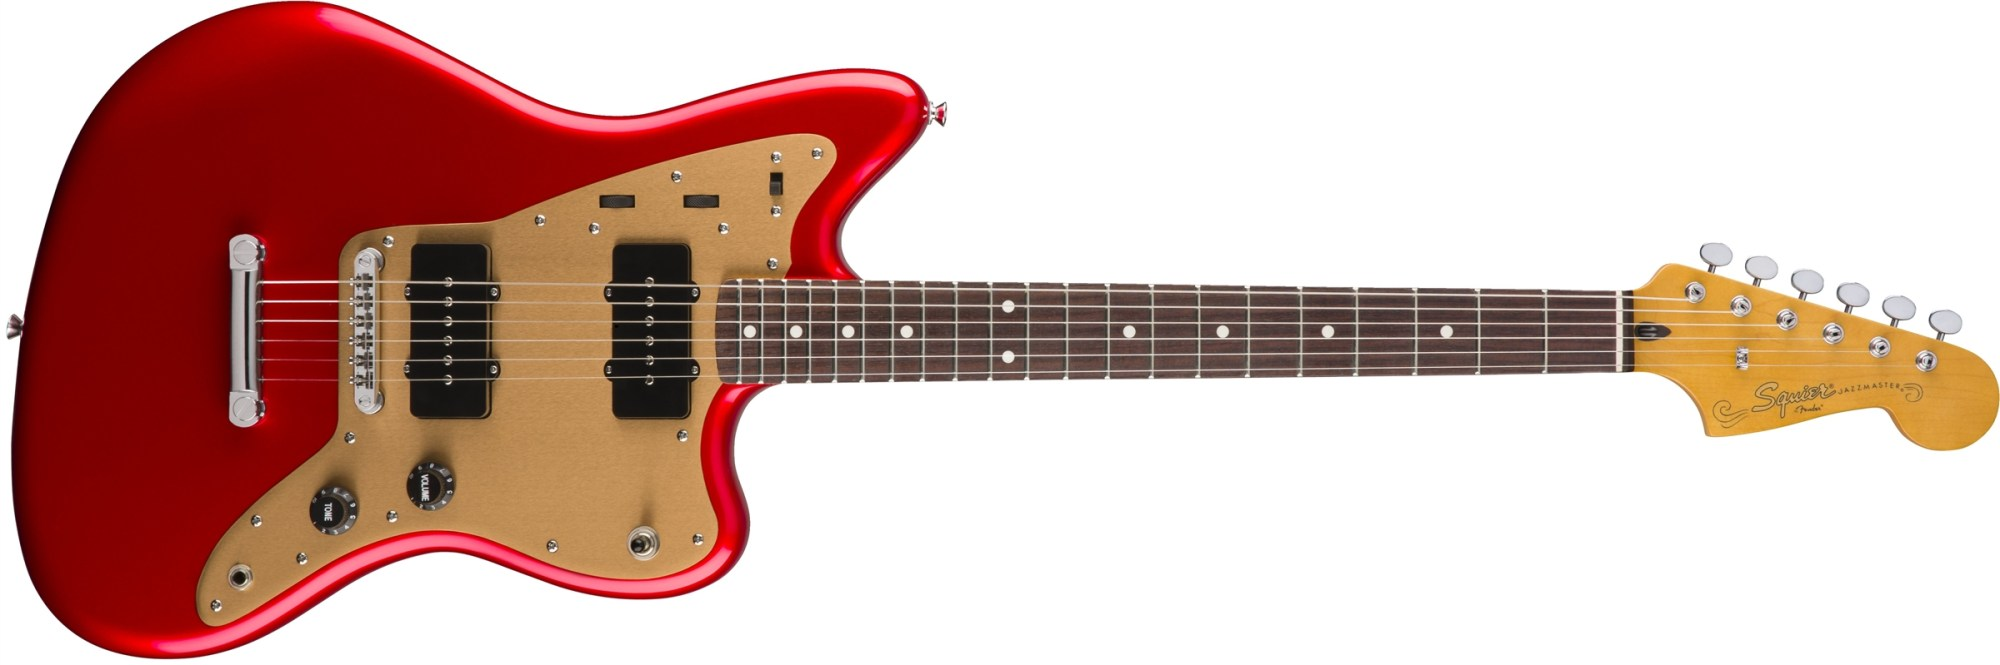 hight resolution of deluxe jazzmaster st squier electric guitars tap to expand awesome emg pickups installation